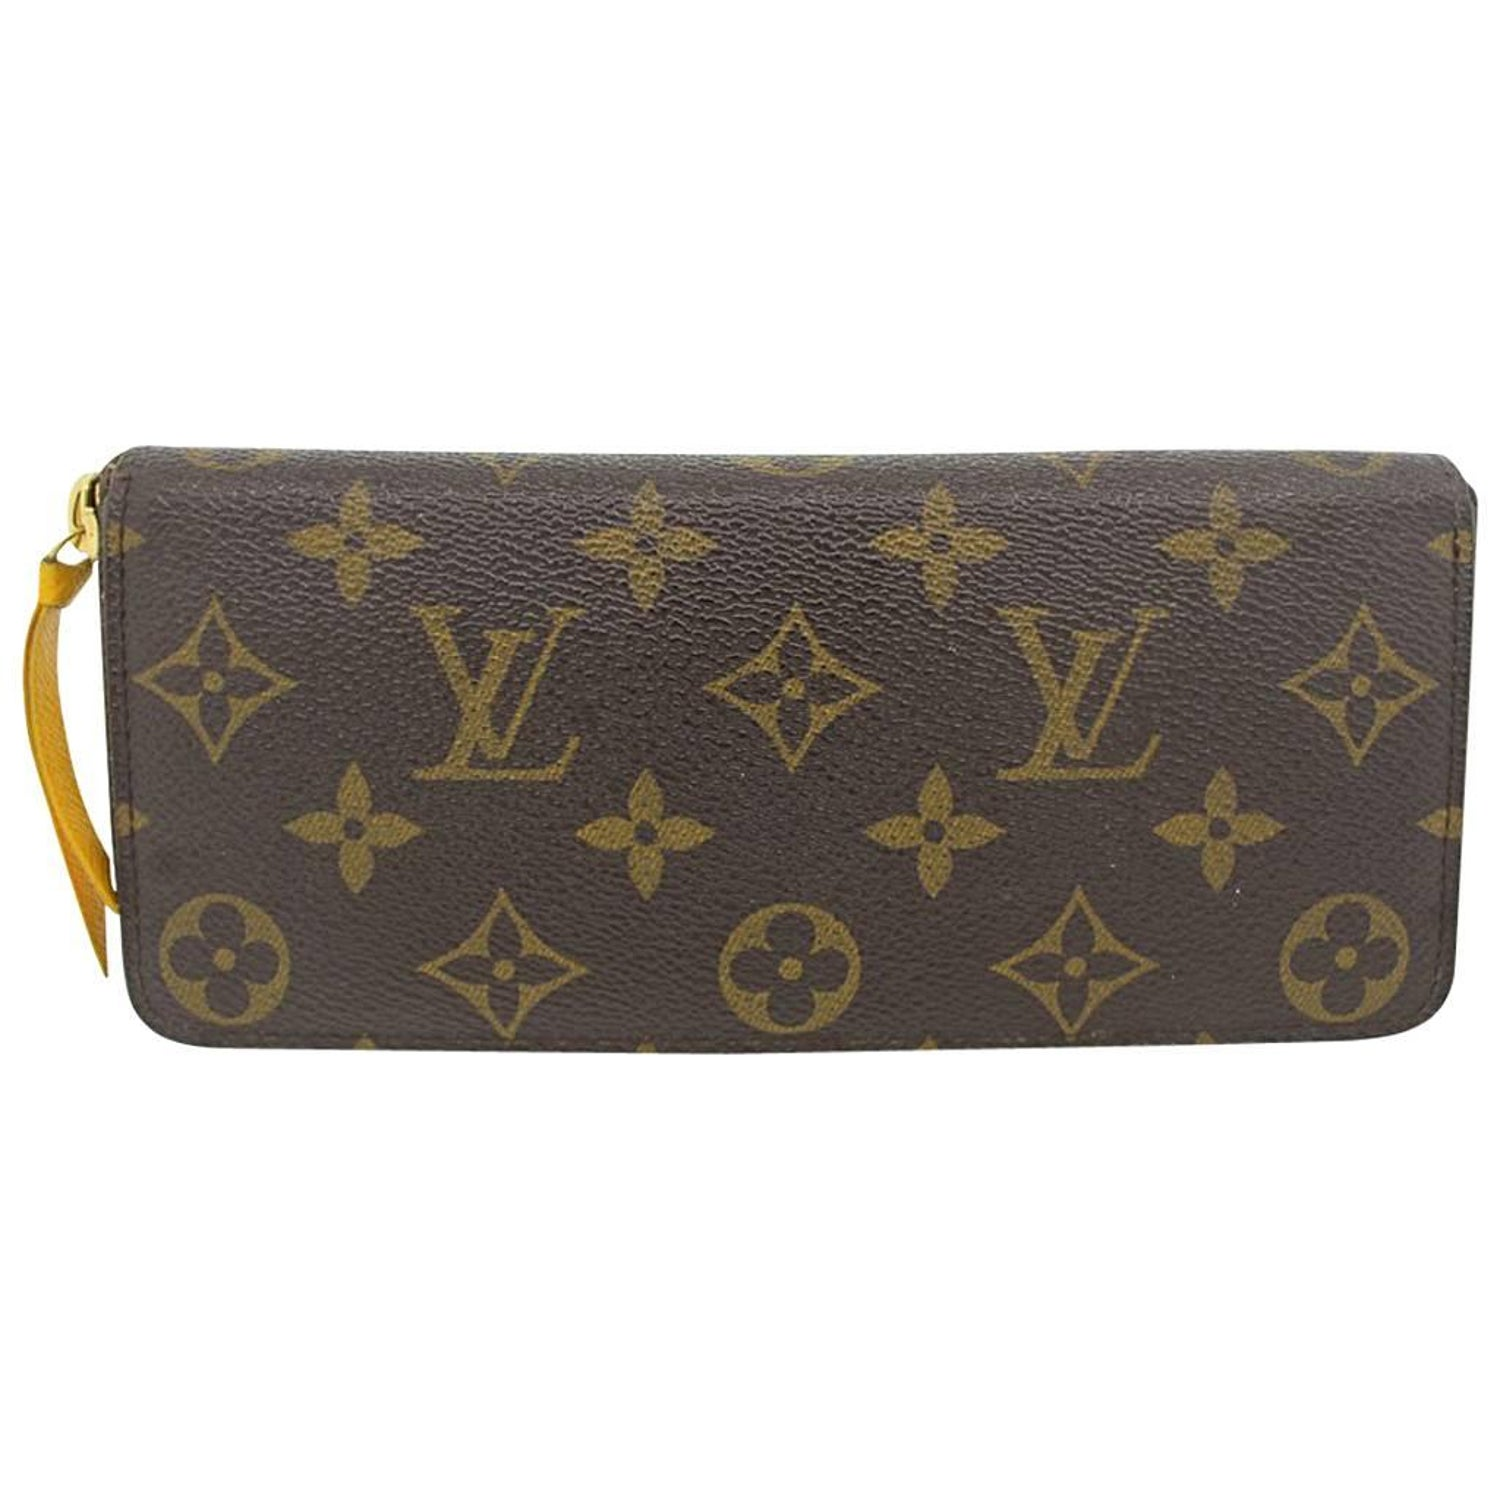 757ec5547110 Louis Vuitton Clemence Monogram Jonquille Wallet in Dust Bag at 1stdibs